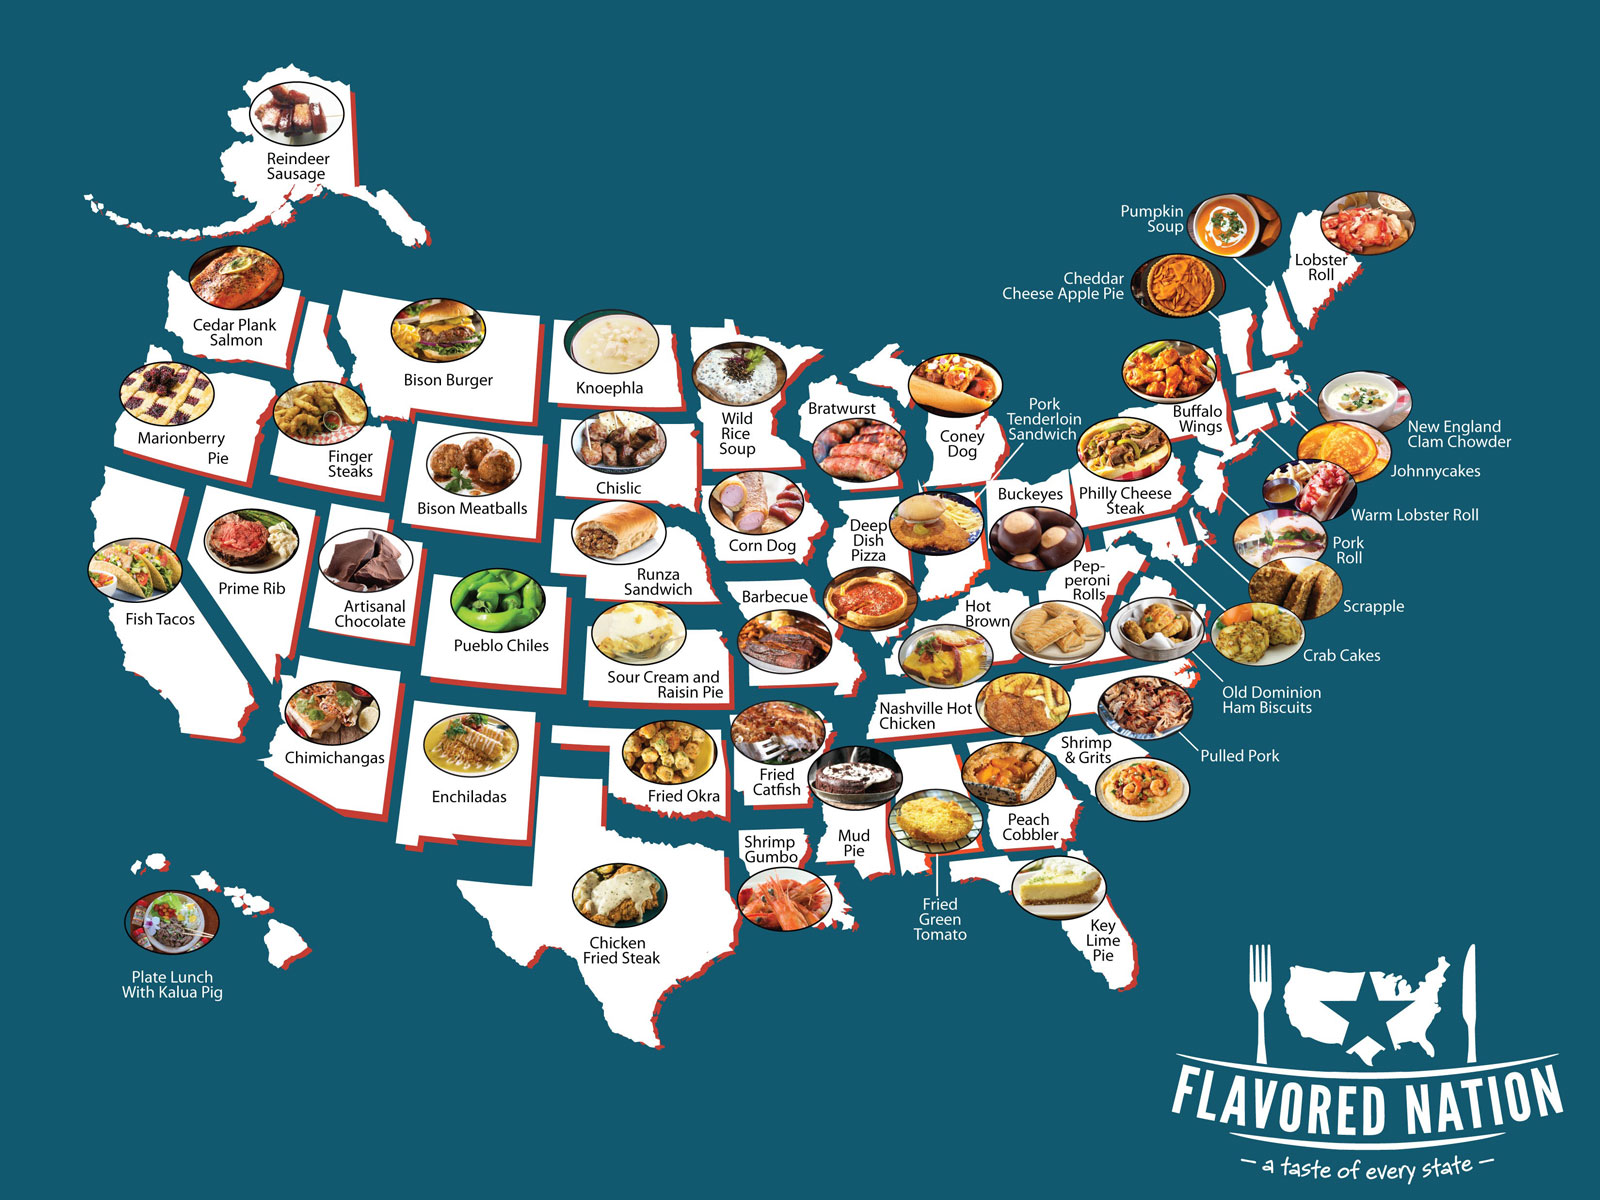 This Festival Features Iconic Foods From All 50 States